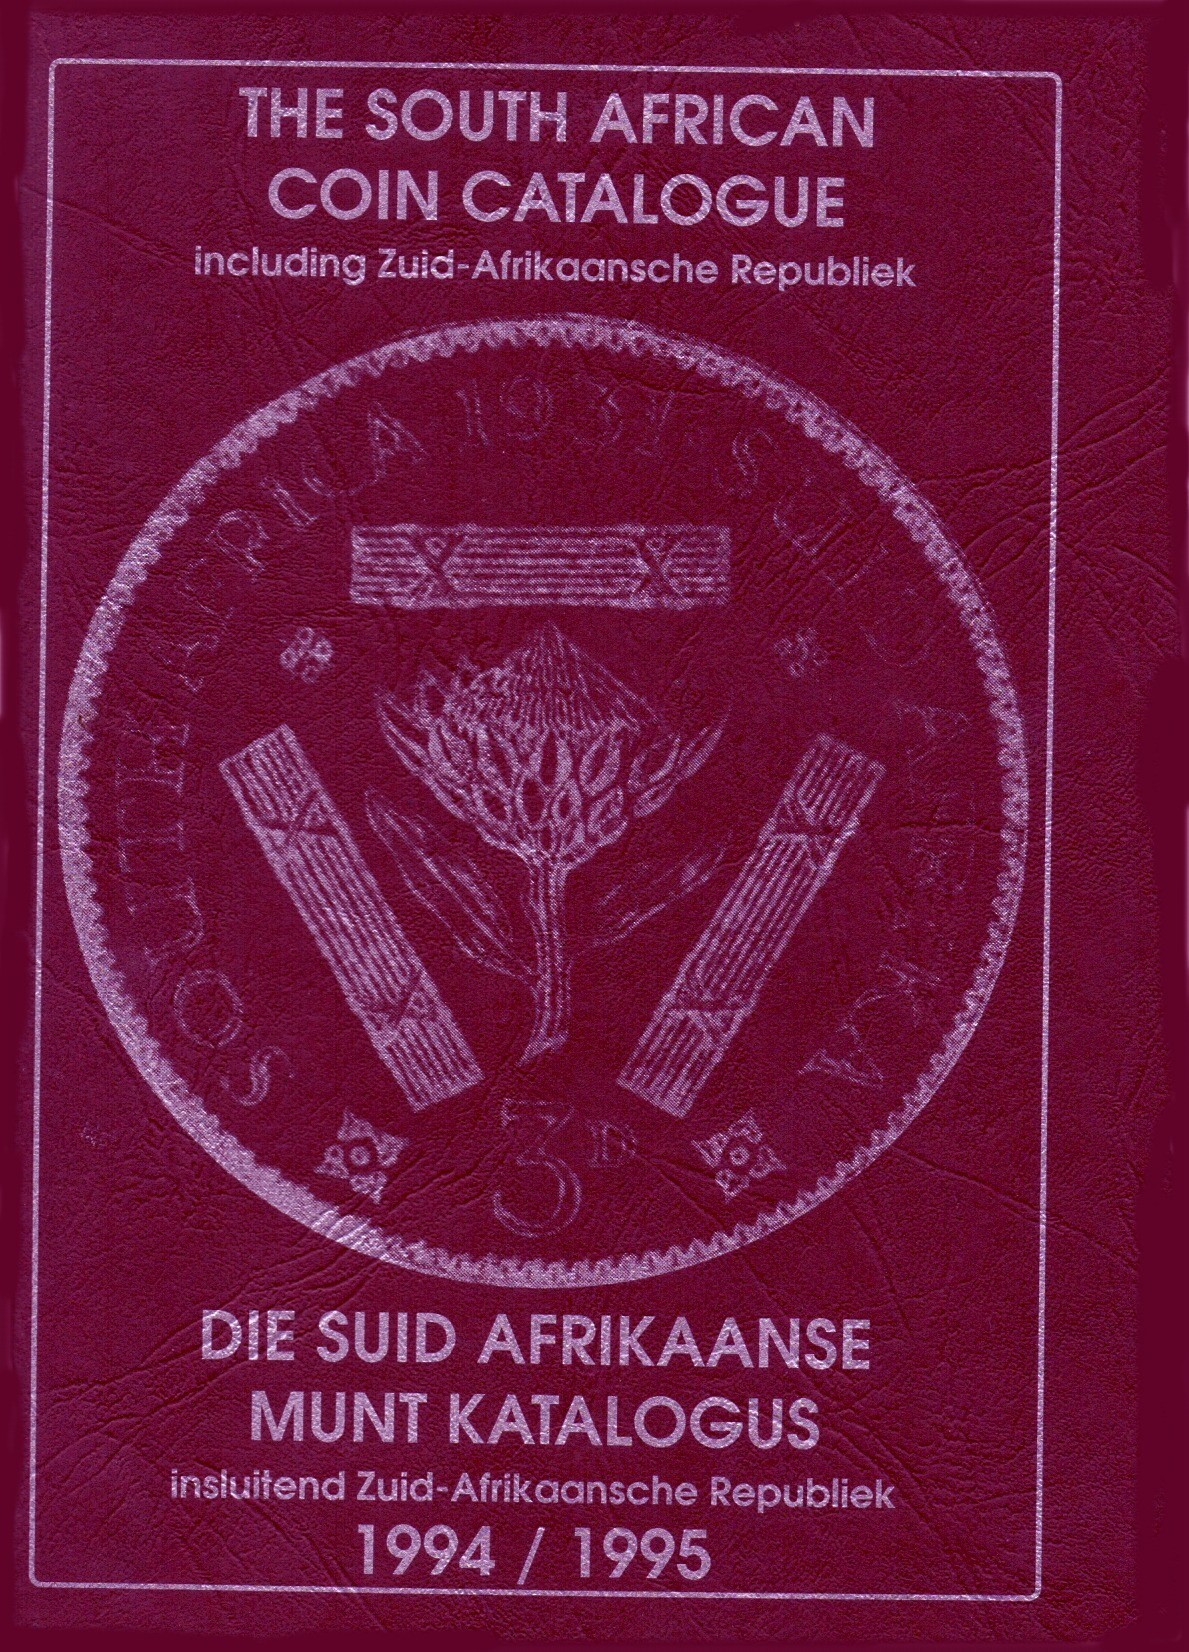 Randburg Coin Catalogue 1994 to 1995